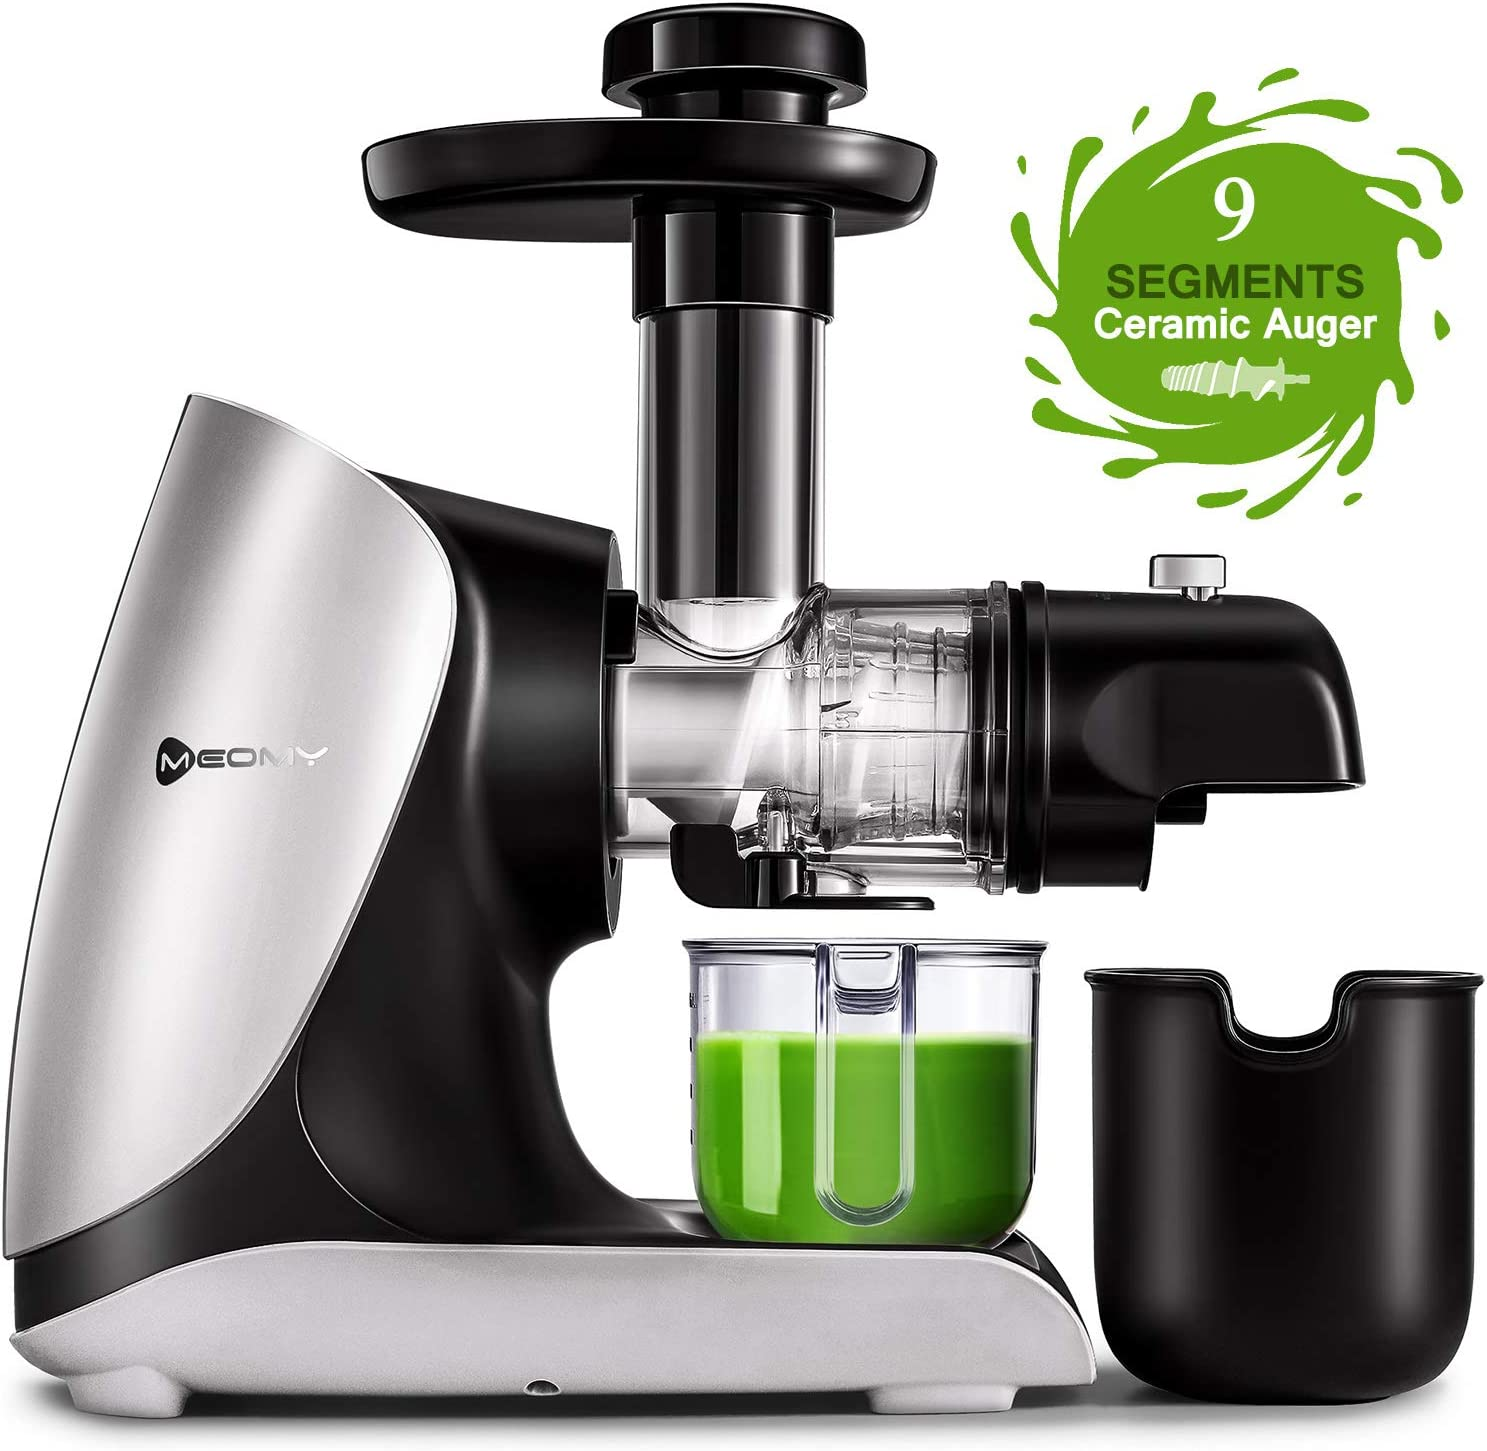 MEOMY Masticating Juicer Machines, Slow Cold Press Juicer with Ceramic Auger, 2 Modes High Yield Juice Extractor with Recipes for Fruits and